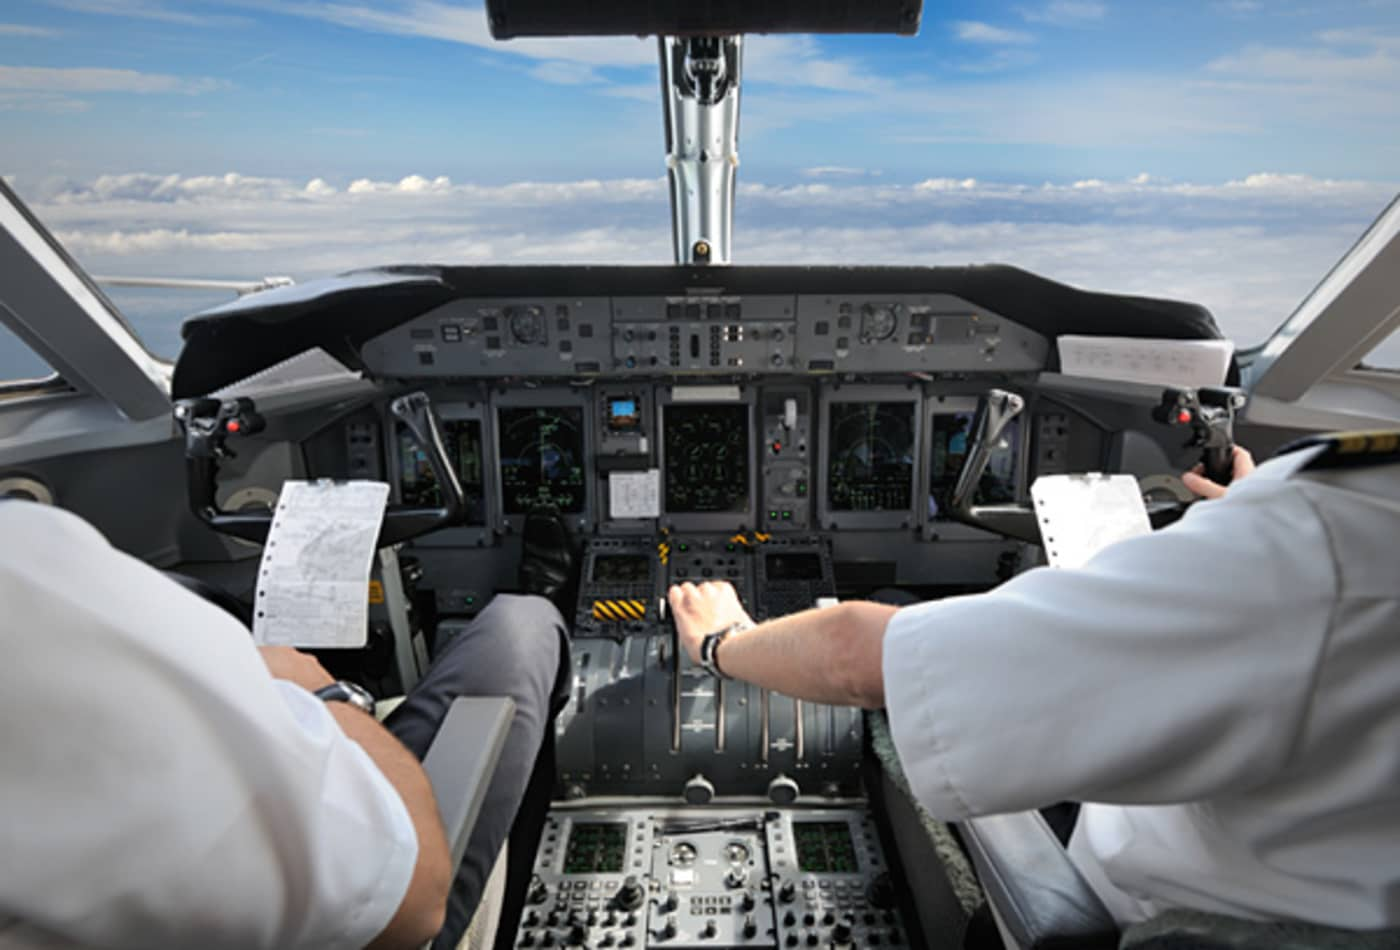 CNBC_americas_highest_paying_jobs_airlinepilot.jpg